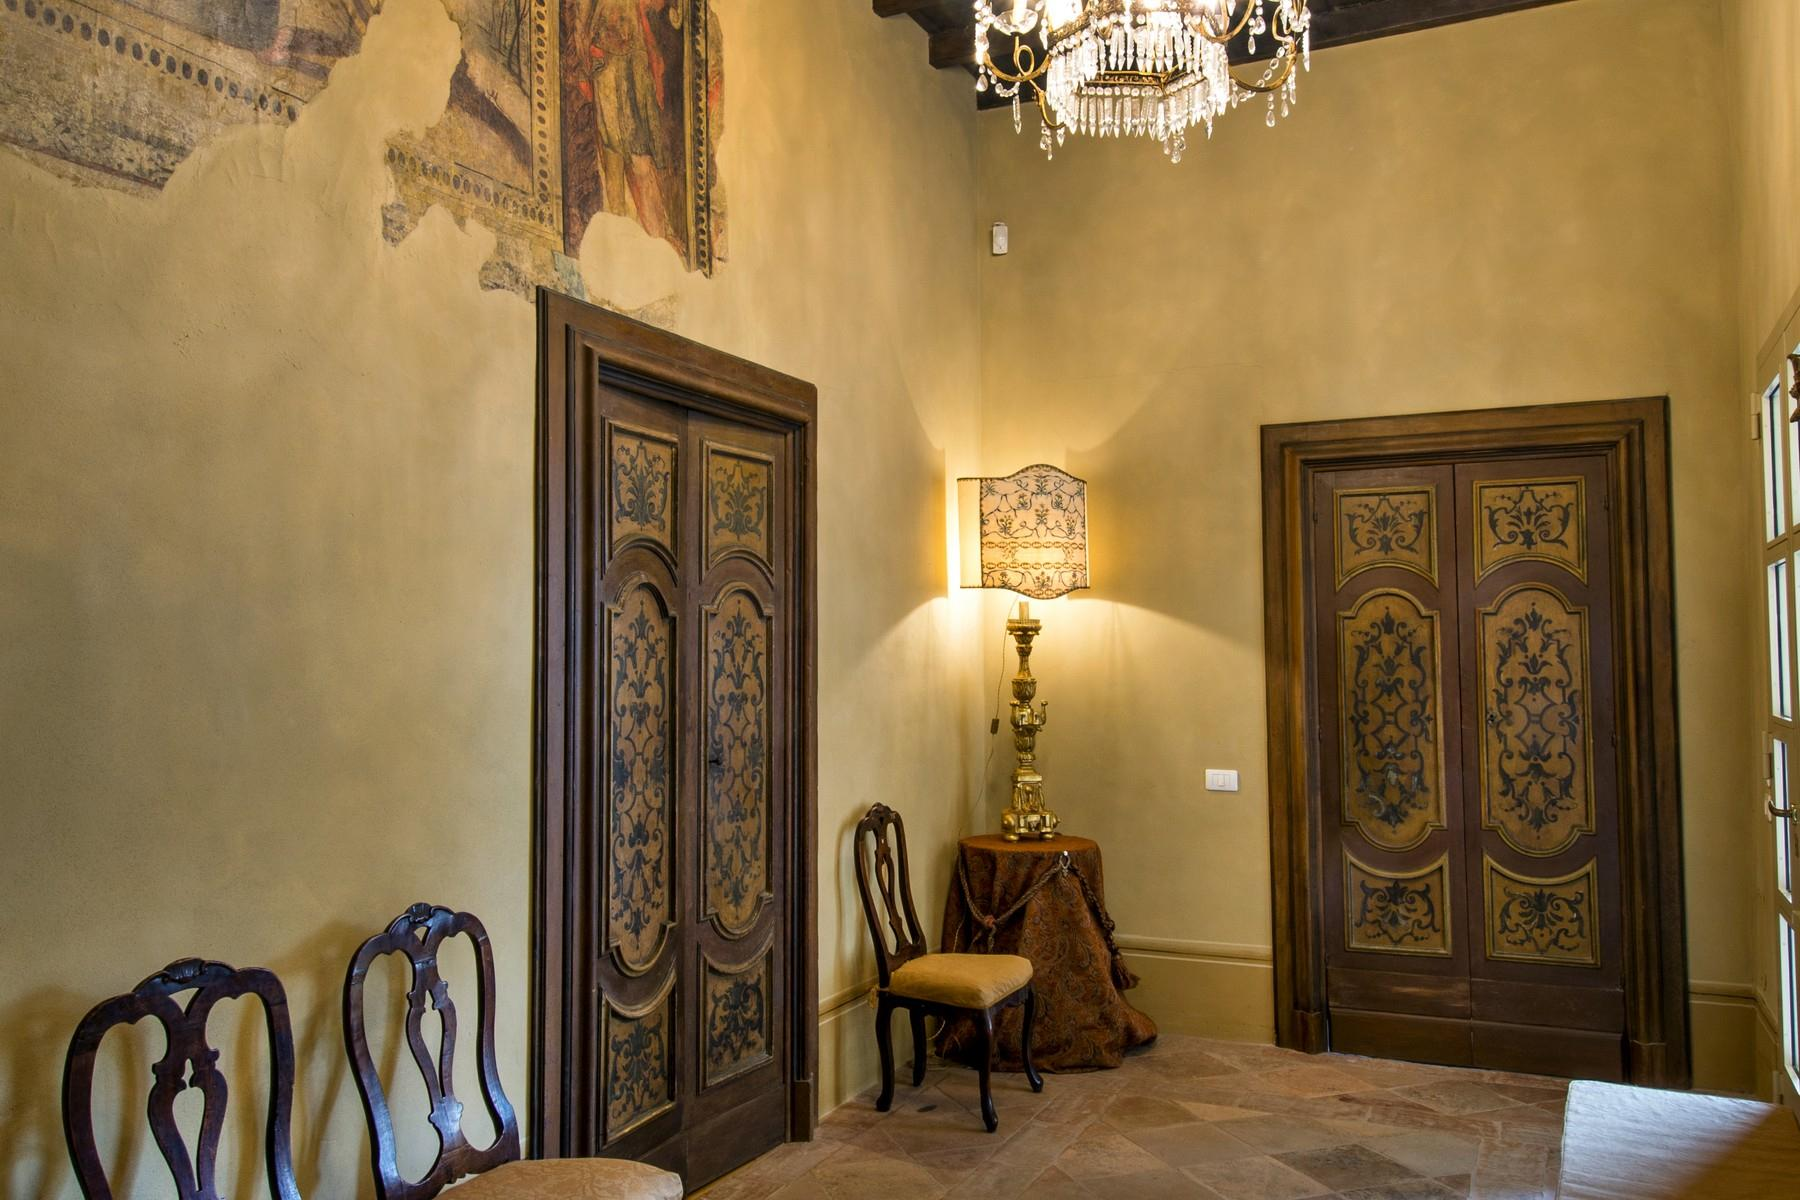 Magnificent historic palace in the heart of Reggio Emilia - 16